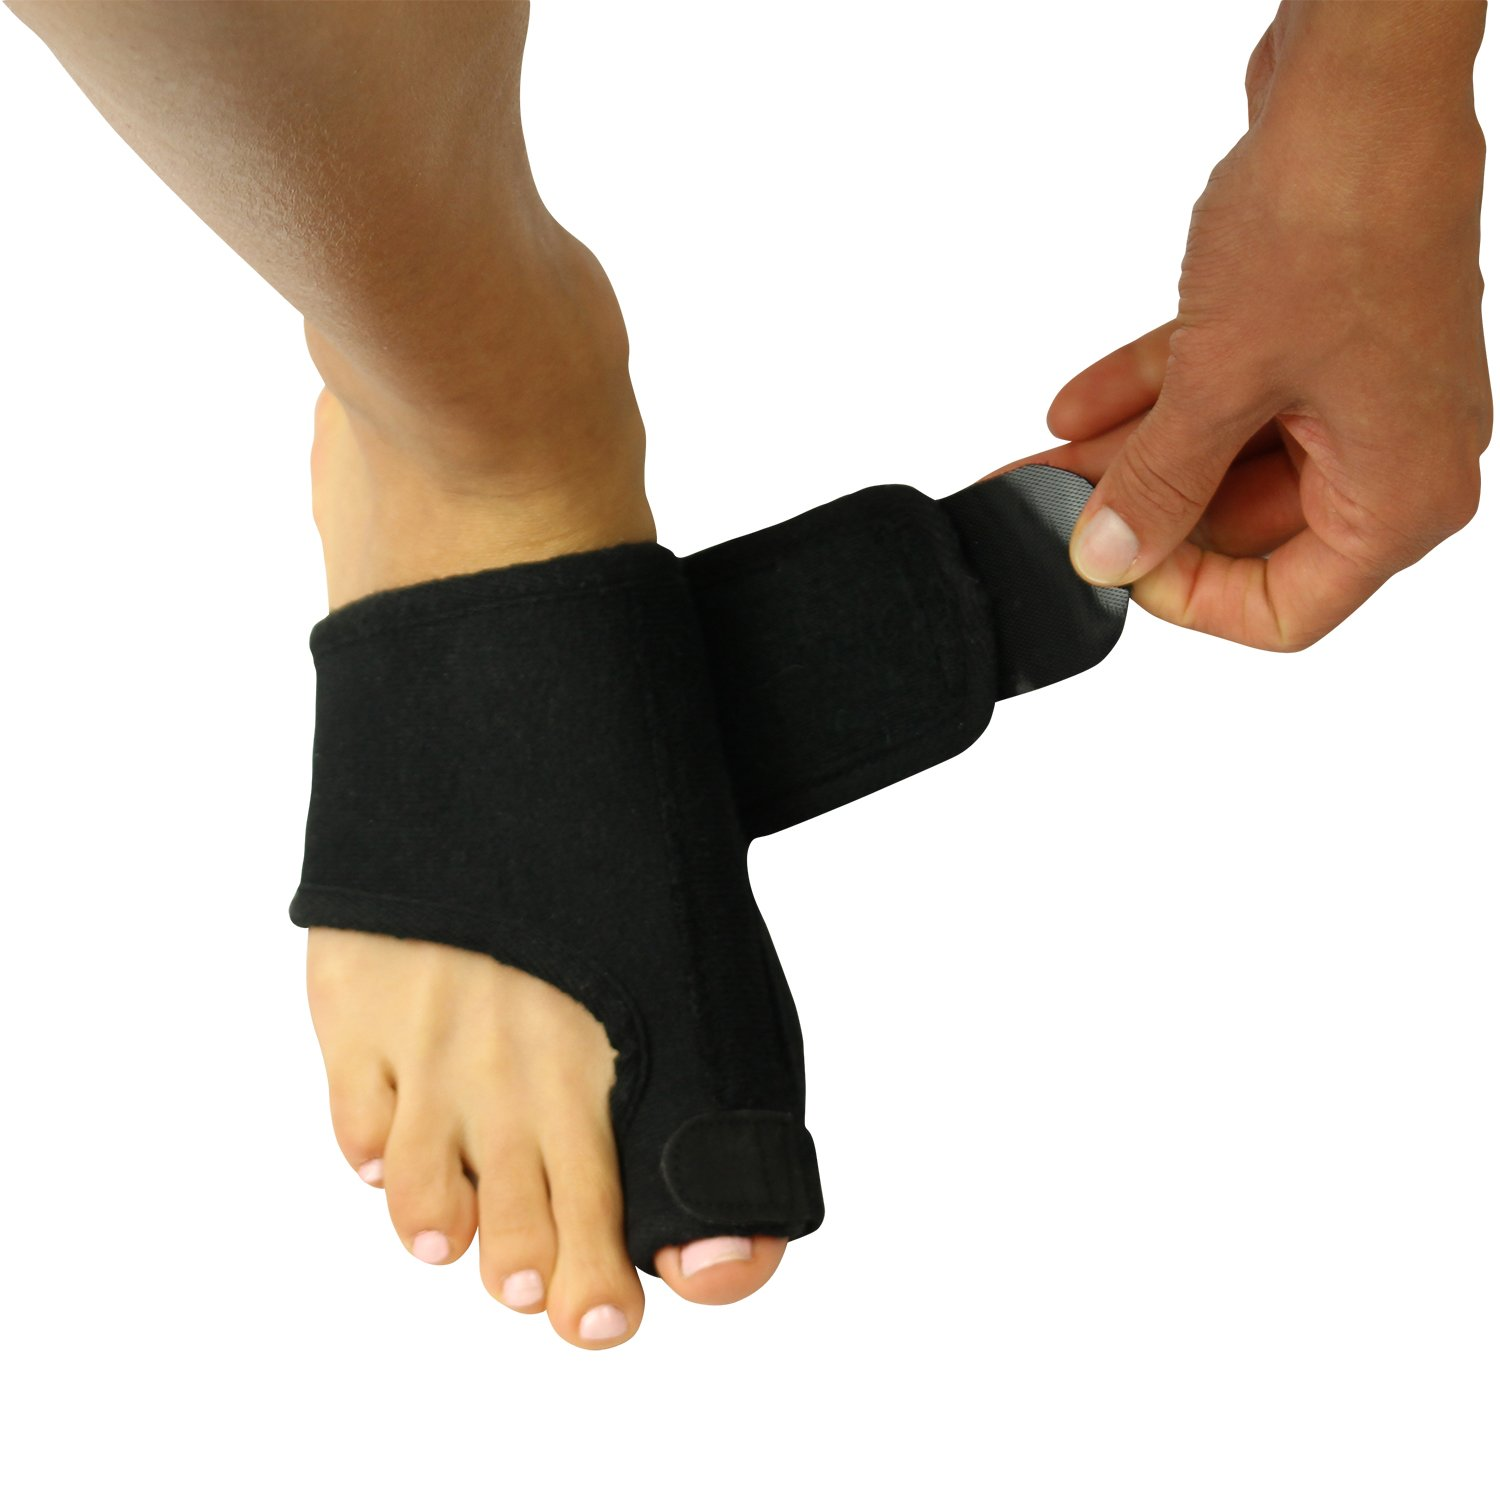 Bunion Splint by Vive [Pair] - Toe Straightener & Corrector Brace Pad for Hallux Valgus Pain Relief - Night Time Support for Men & Women